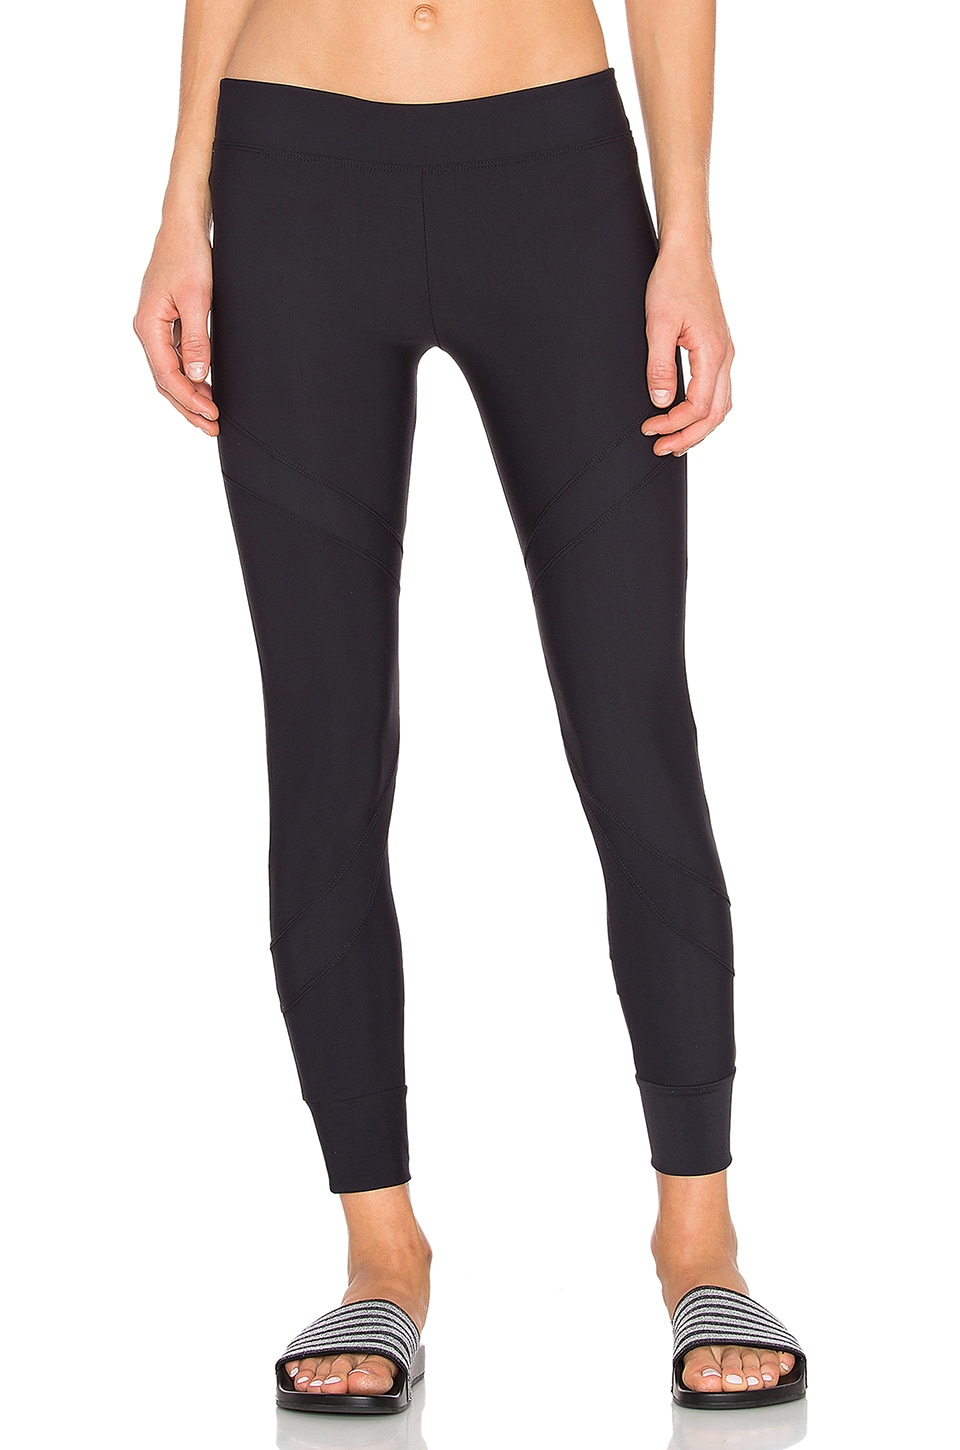 SOLOW Convergent Zip Legging in Black